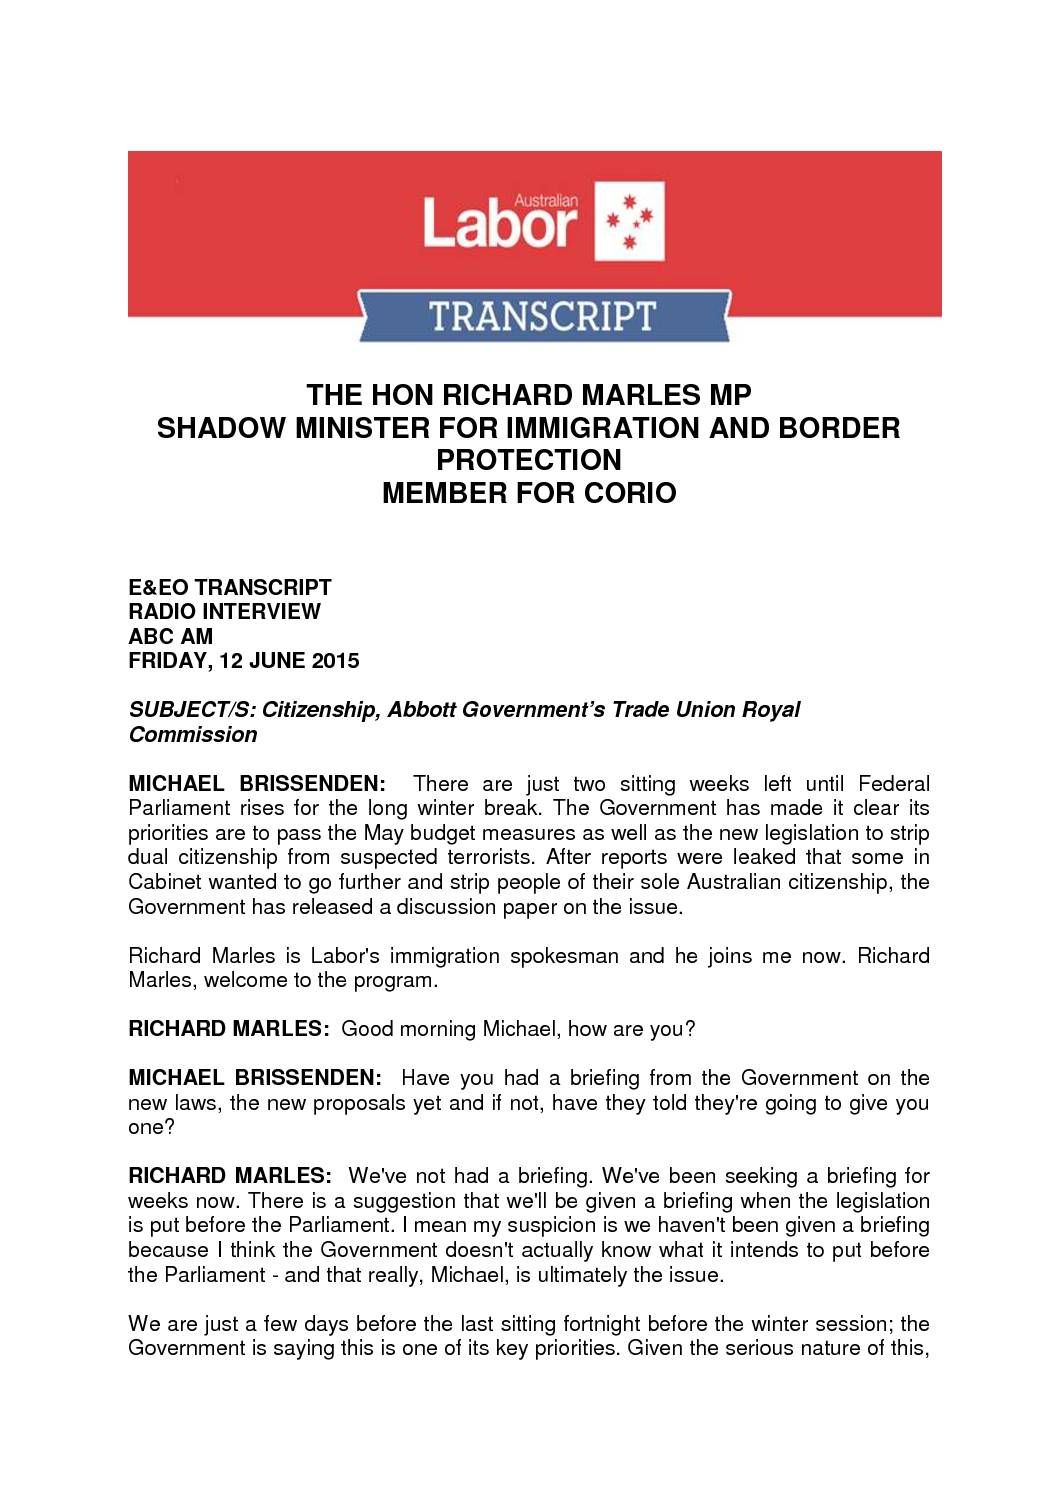 15.06.12 RICHARD MARLES TRANSCRIPT ABC AM